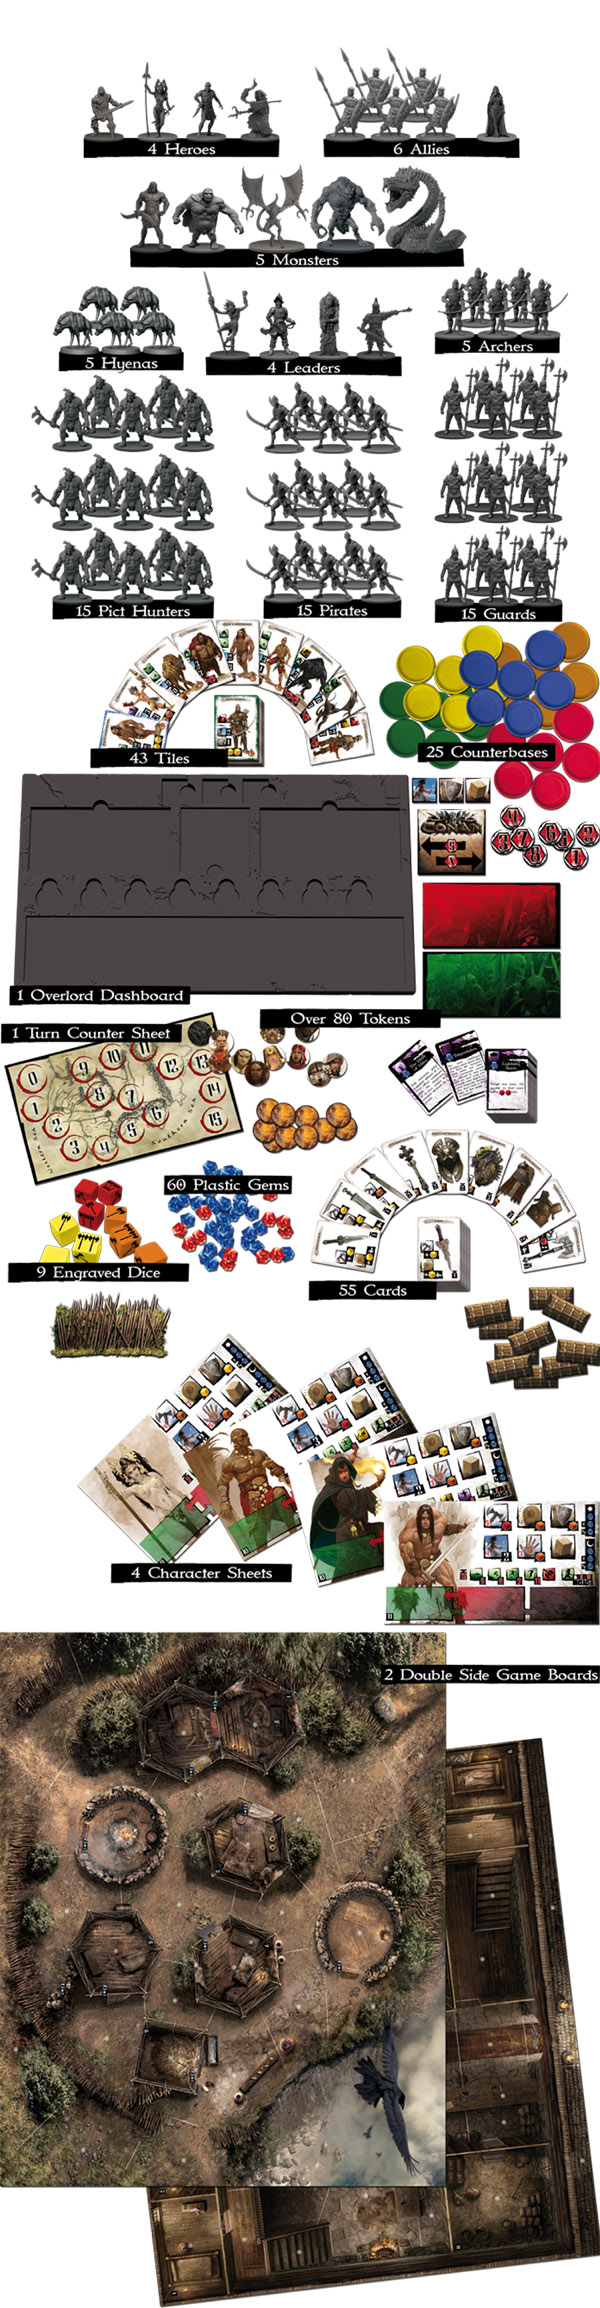 Conan Board Game Contents